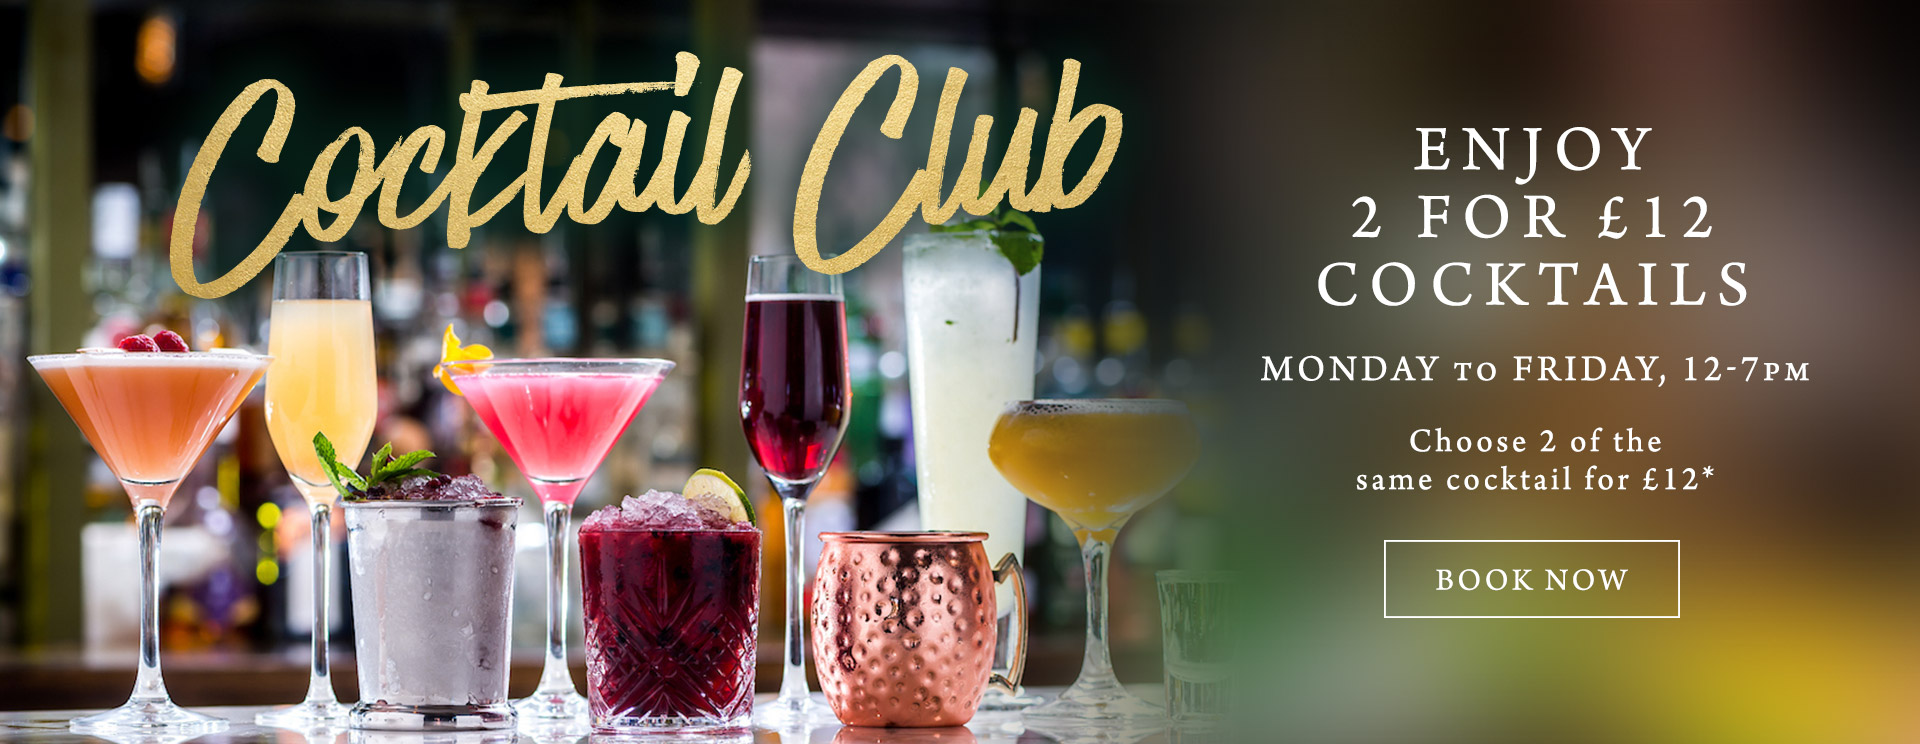 2 for £12 cocktails at The Windmill